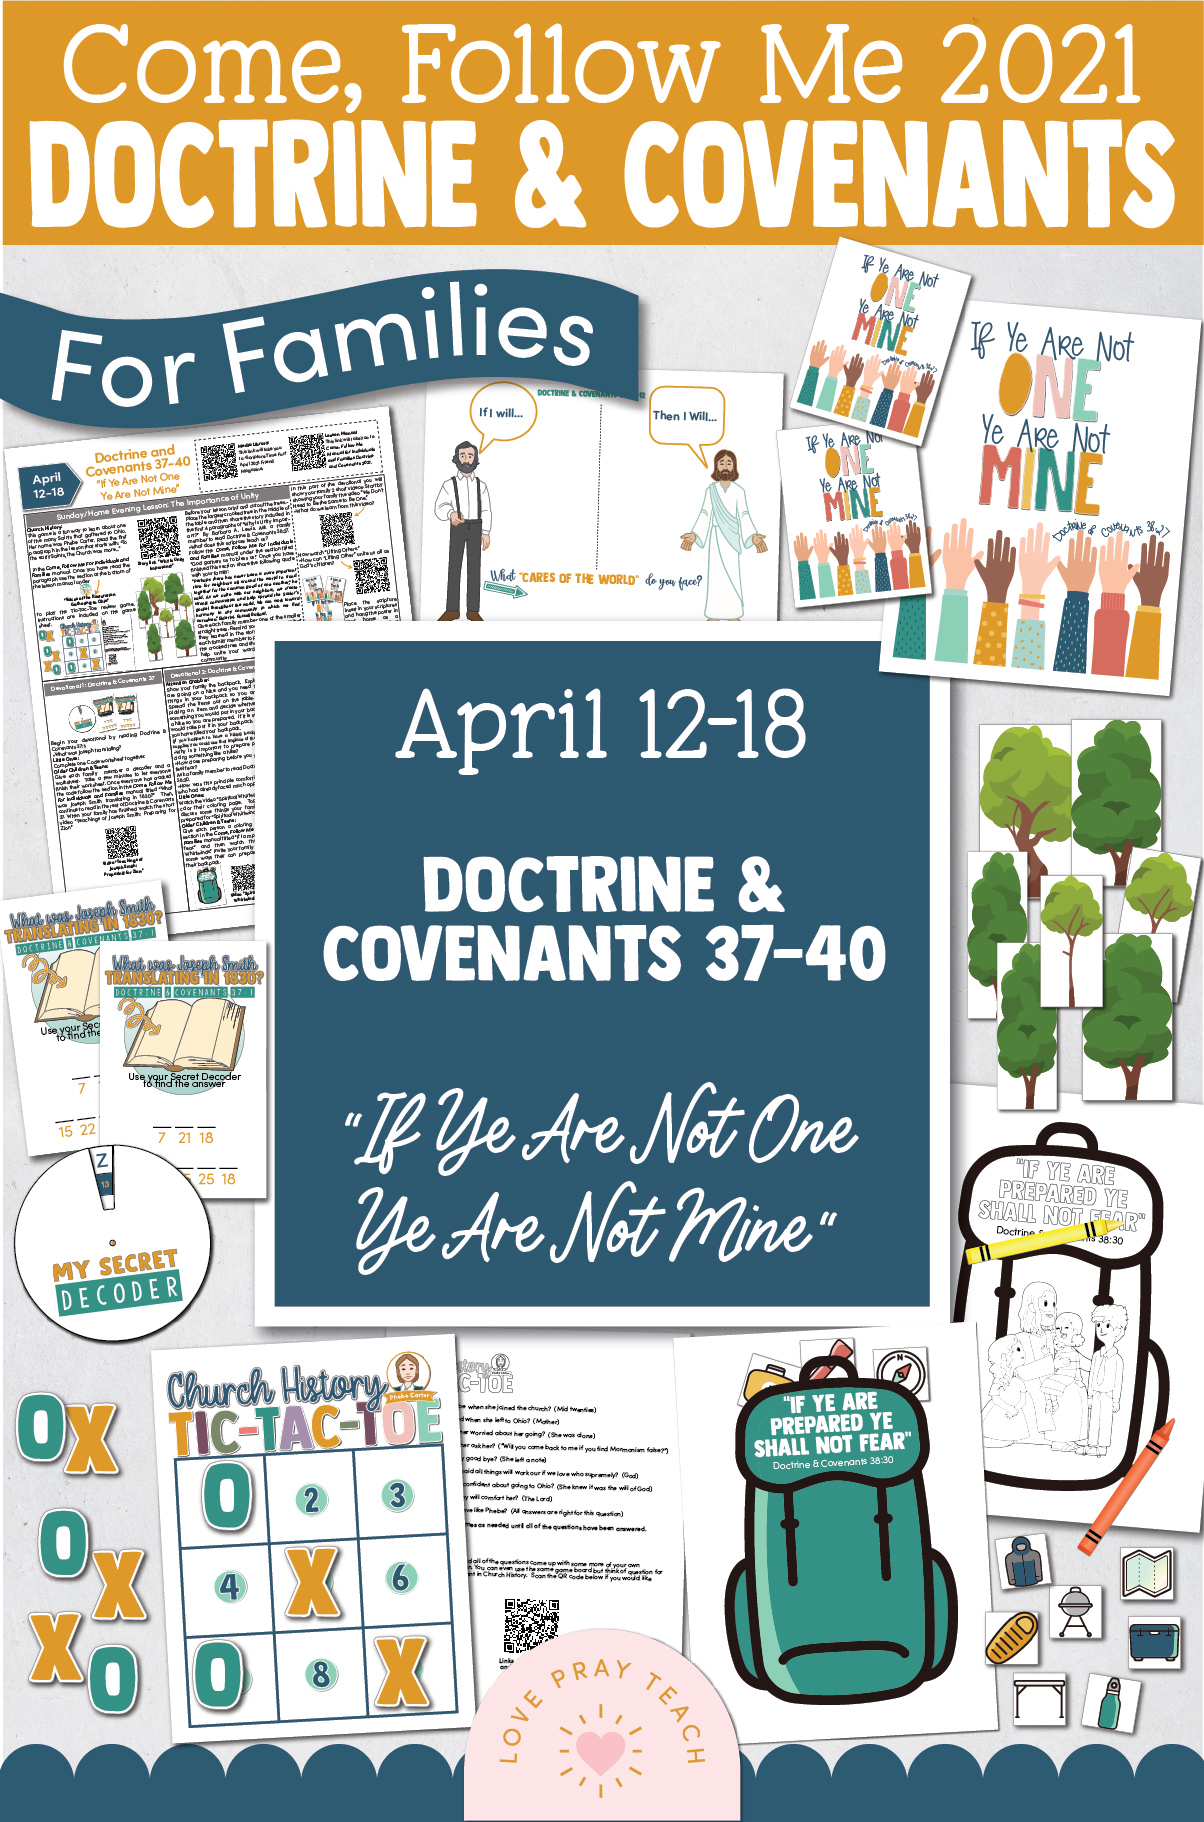 "Come, Follow Me—For Individuals and Families: Doctrine And Covenants 2021, April Week 3 Doctrine and Covenants 37-40: April 12-18,""If Ye Are Not One Ye Are Not Mine"""